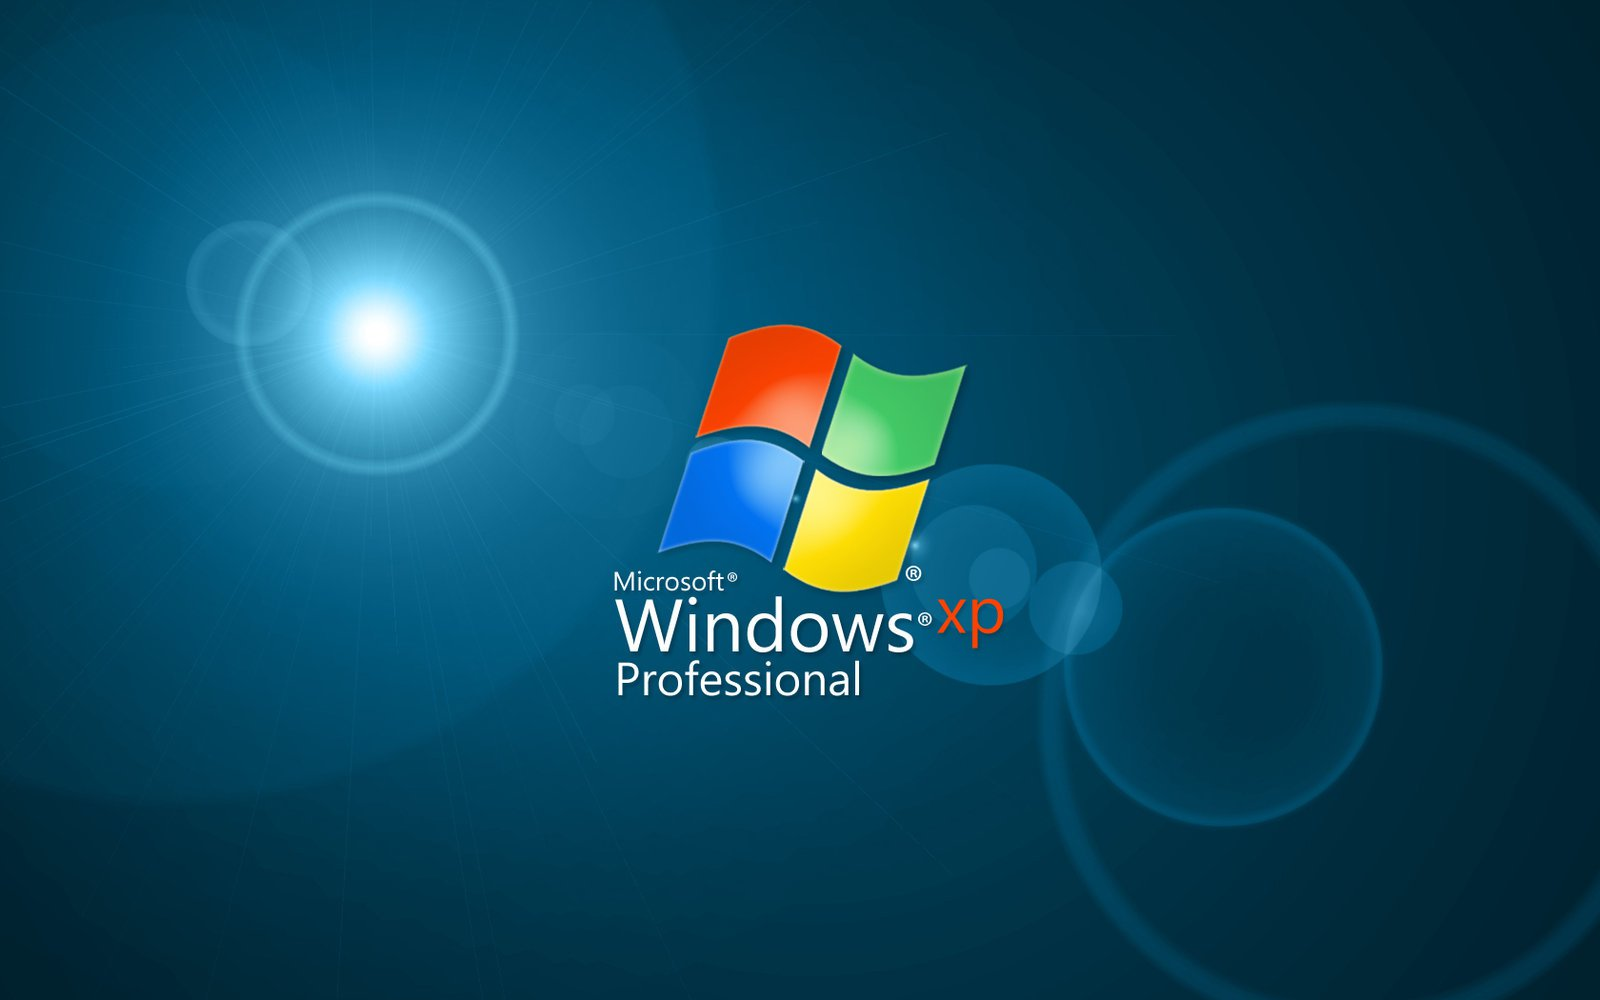 Windows XP still used by large number of companies in Eastern Europe 1600x1000